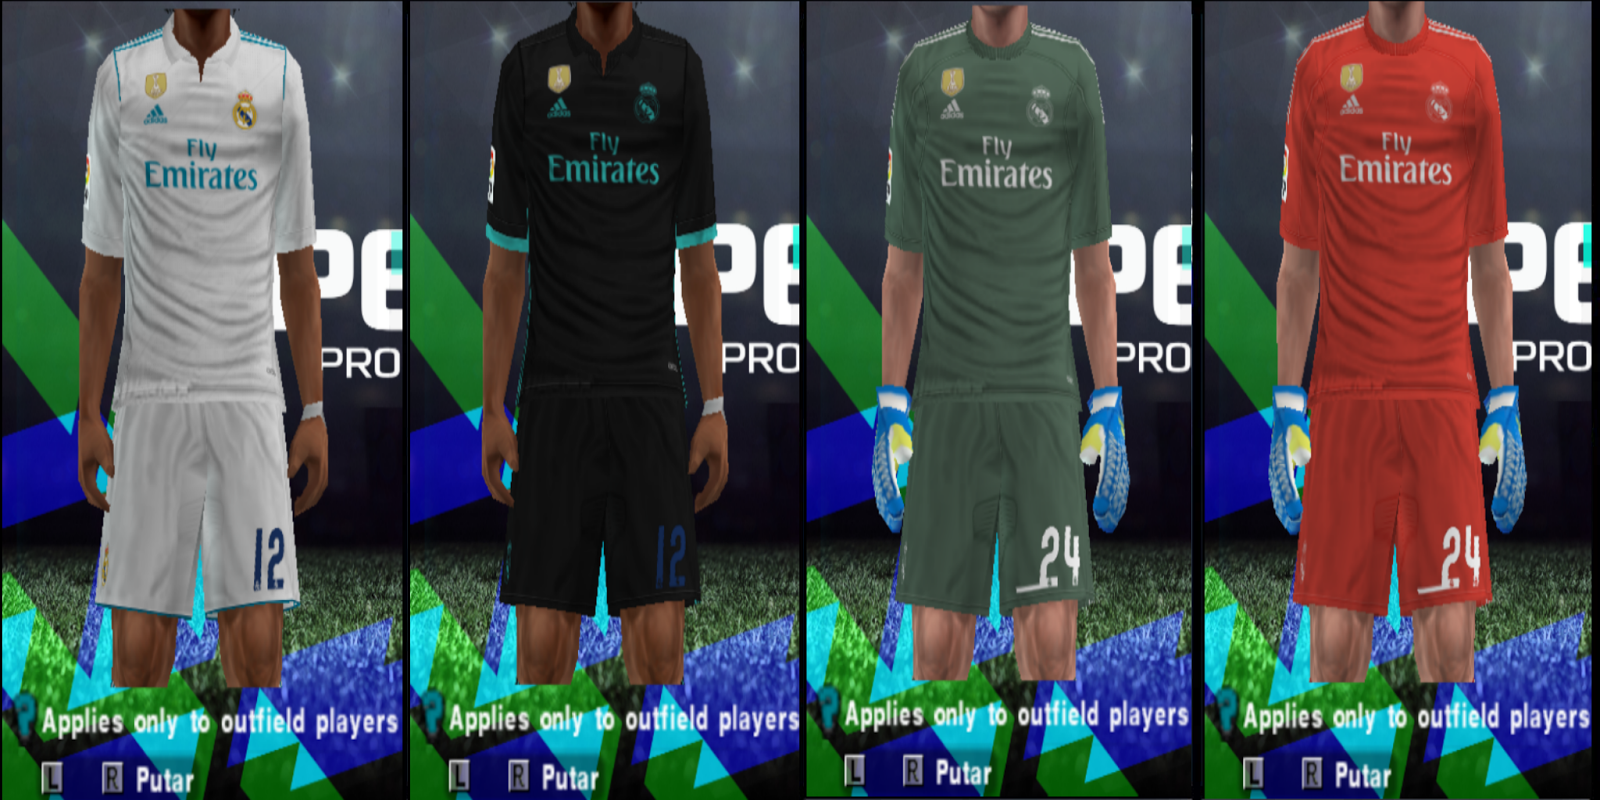 f7658a0cfe7 Yükle (1600x800)Texture Kits Real Madrid 17 18 PES PSP For Emulator PPSSPP  MariokazeKits Real Madrid 2017 2018 PES PSP.